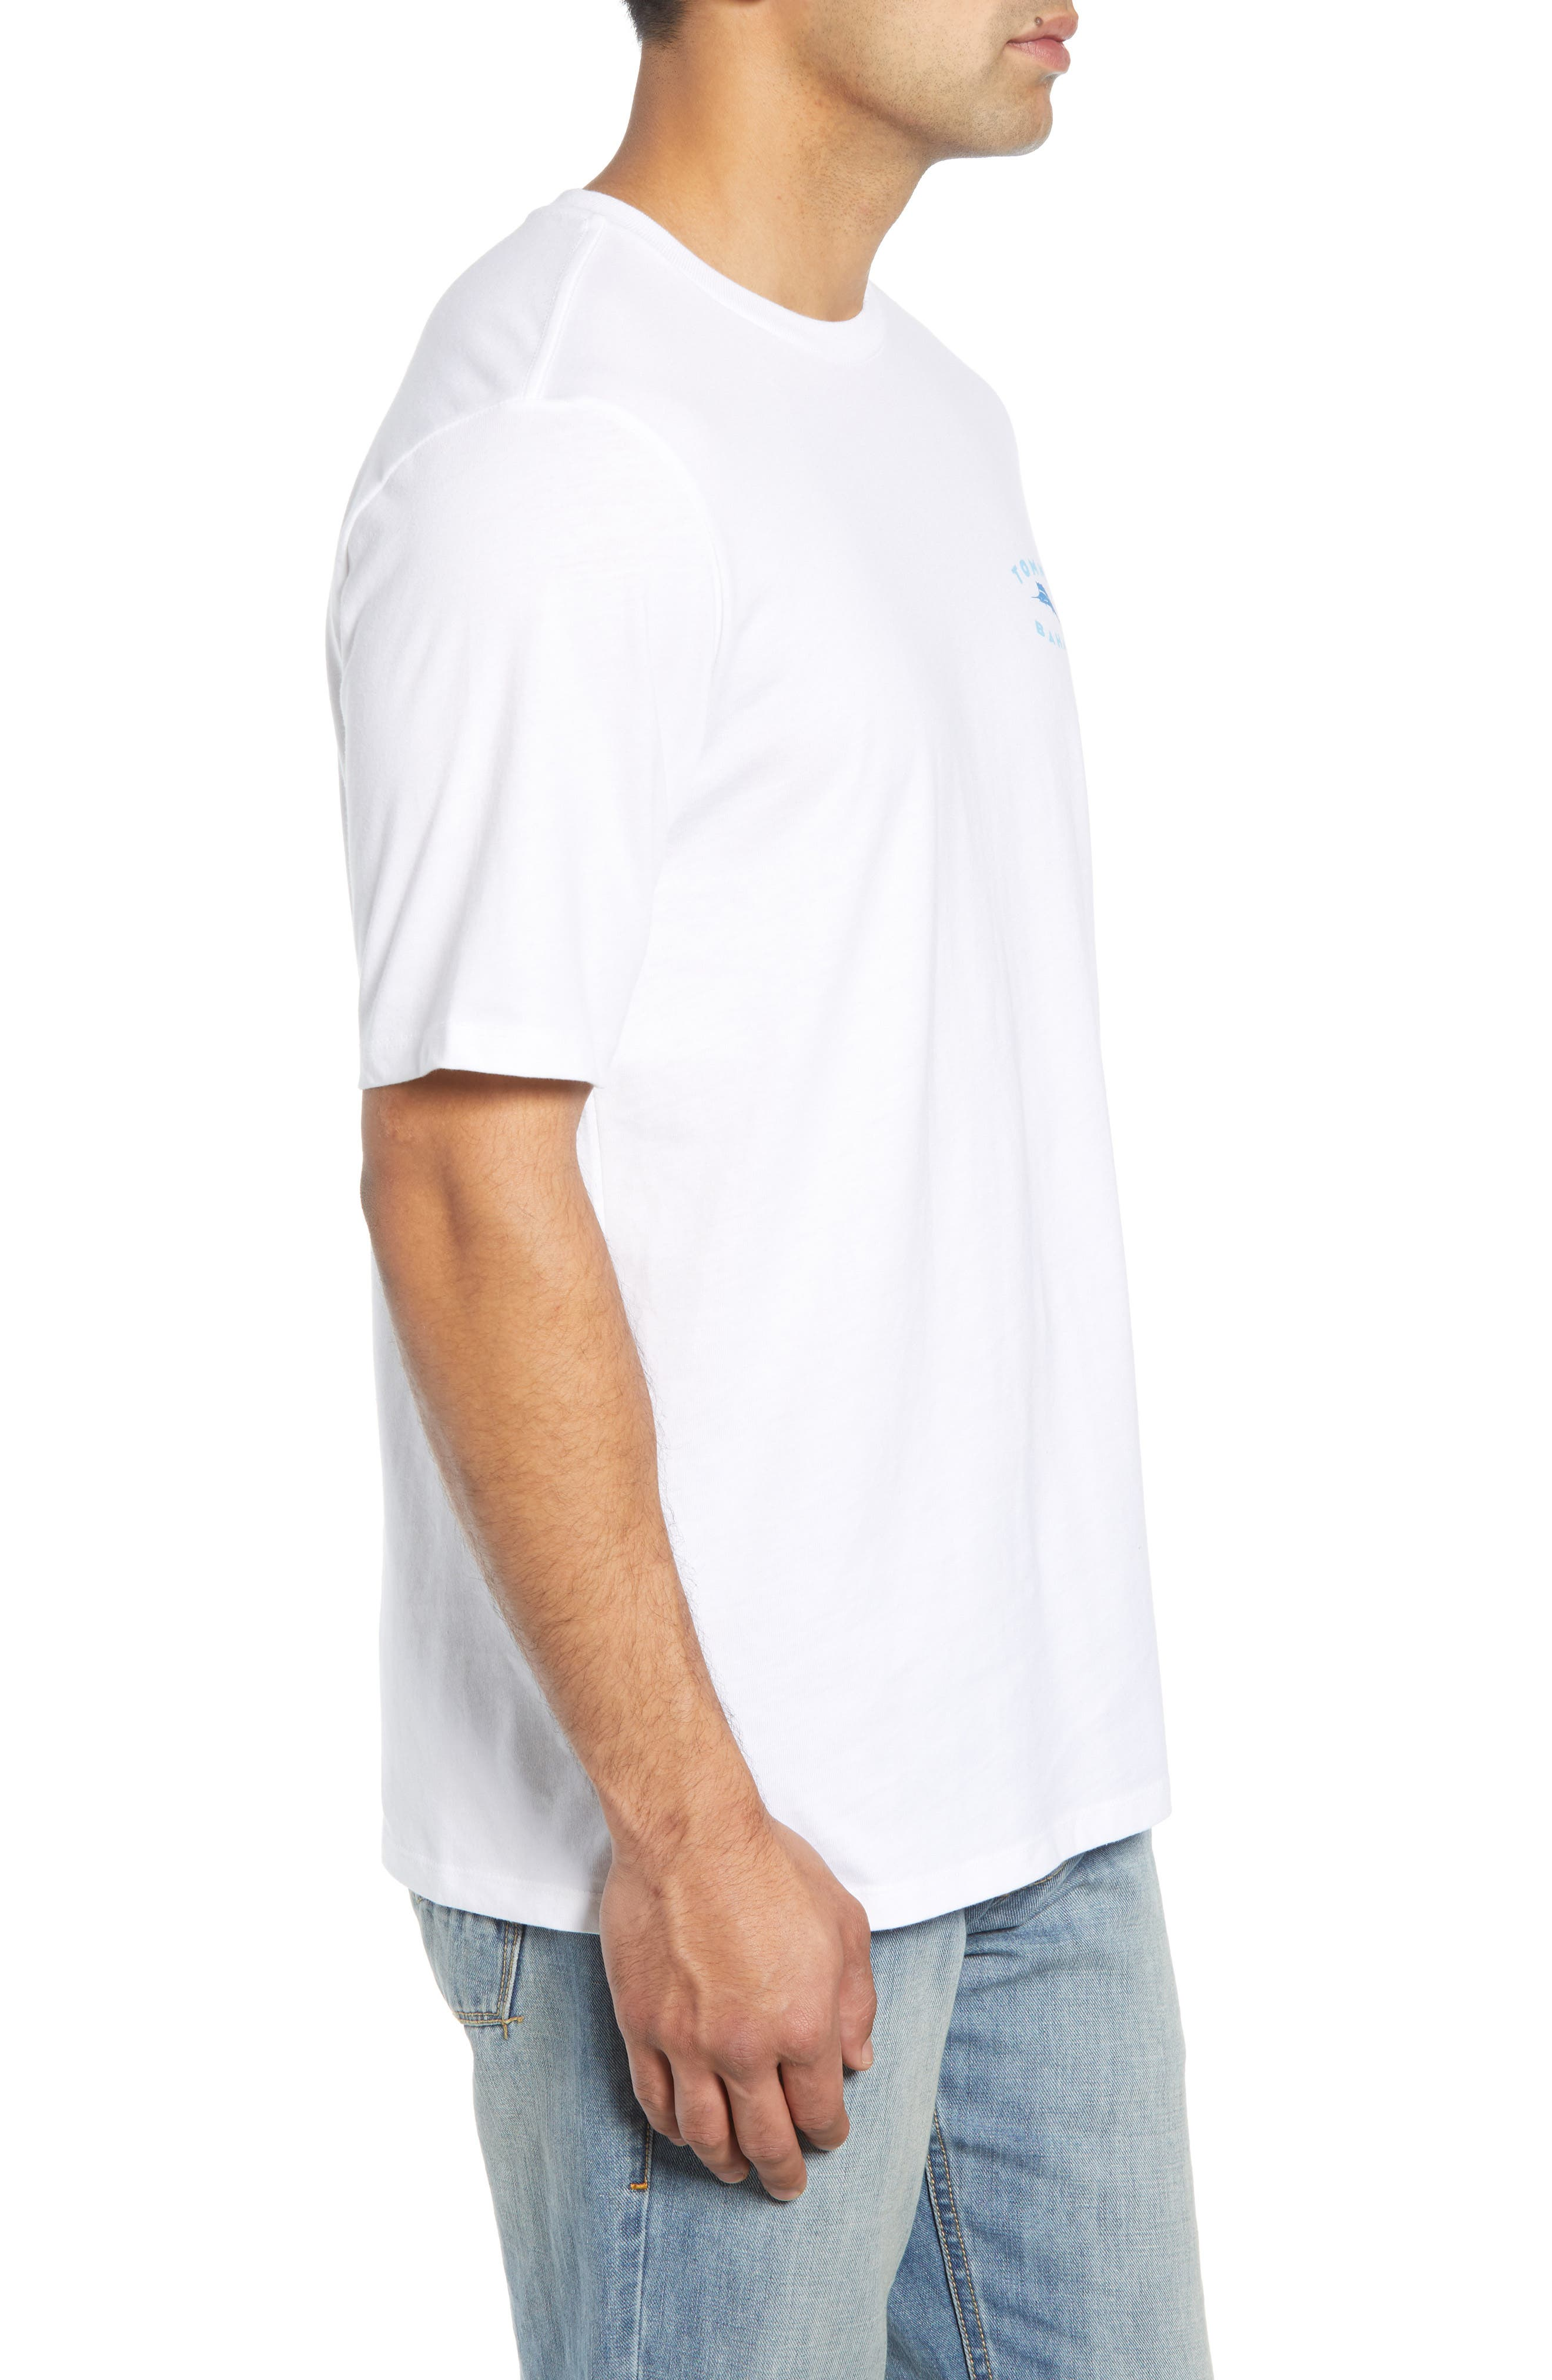 TOMMY BAHAMA,                             Complete Transparency T-Shirt,                             Alternate thumbnail 3, color,                             100